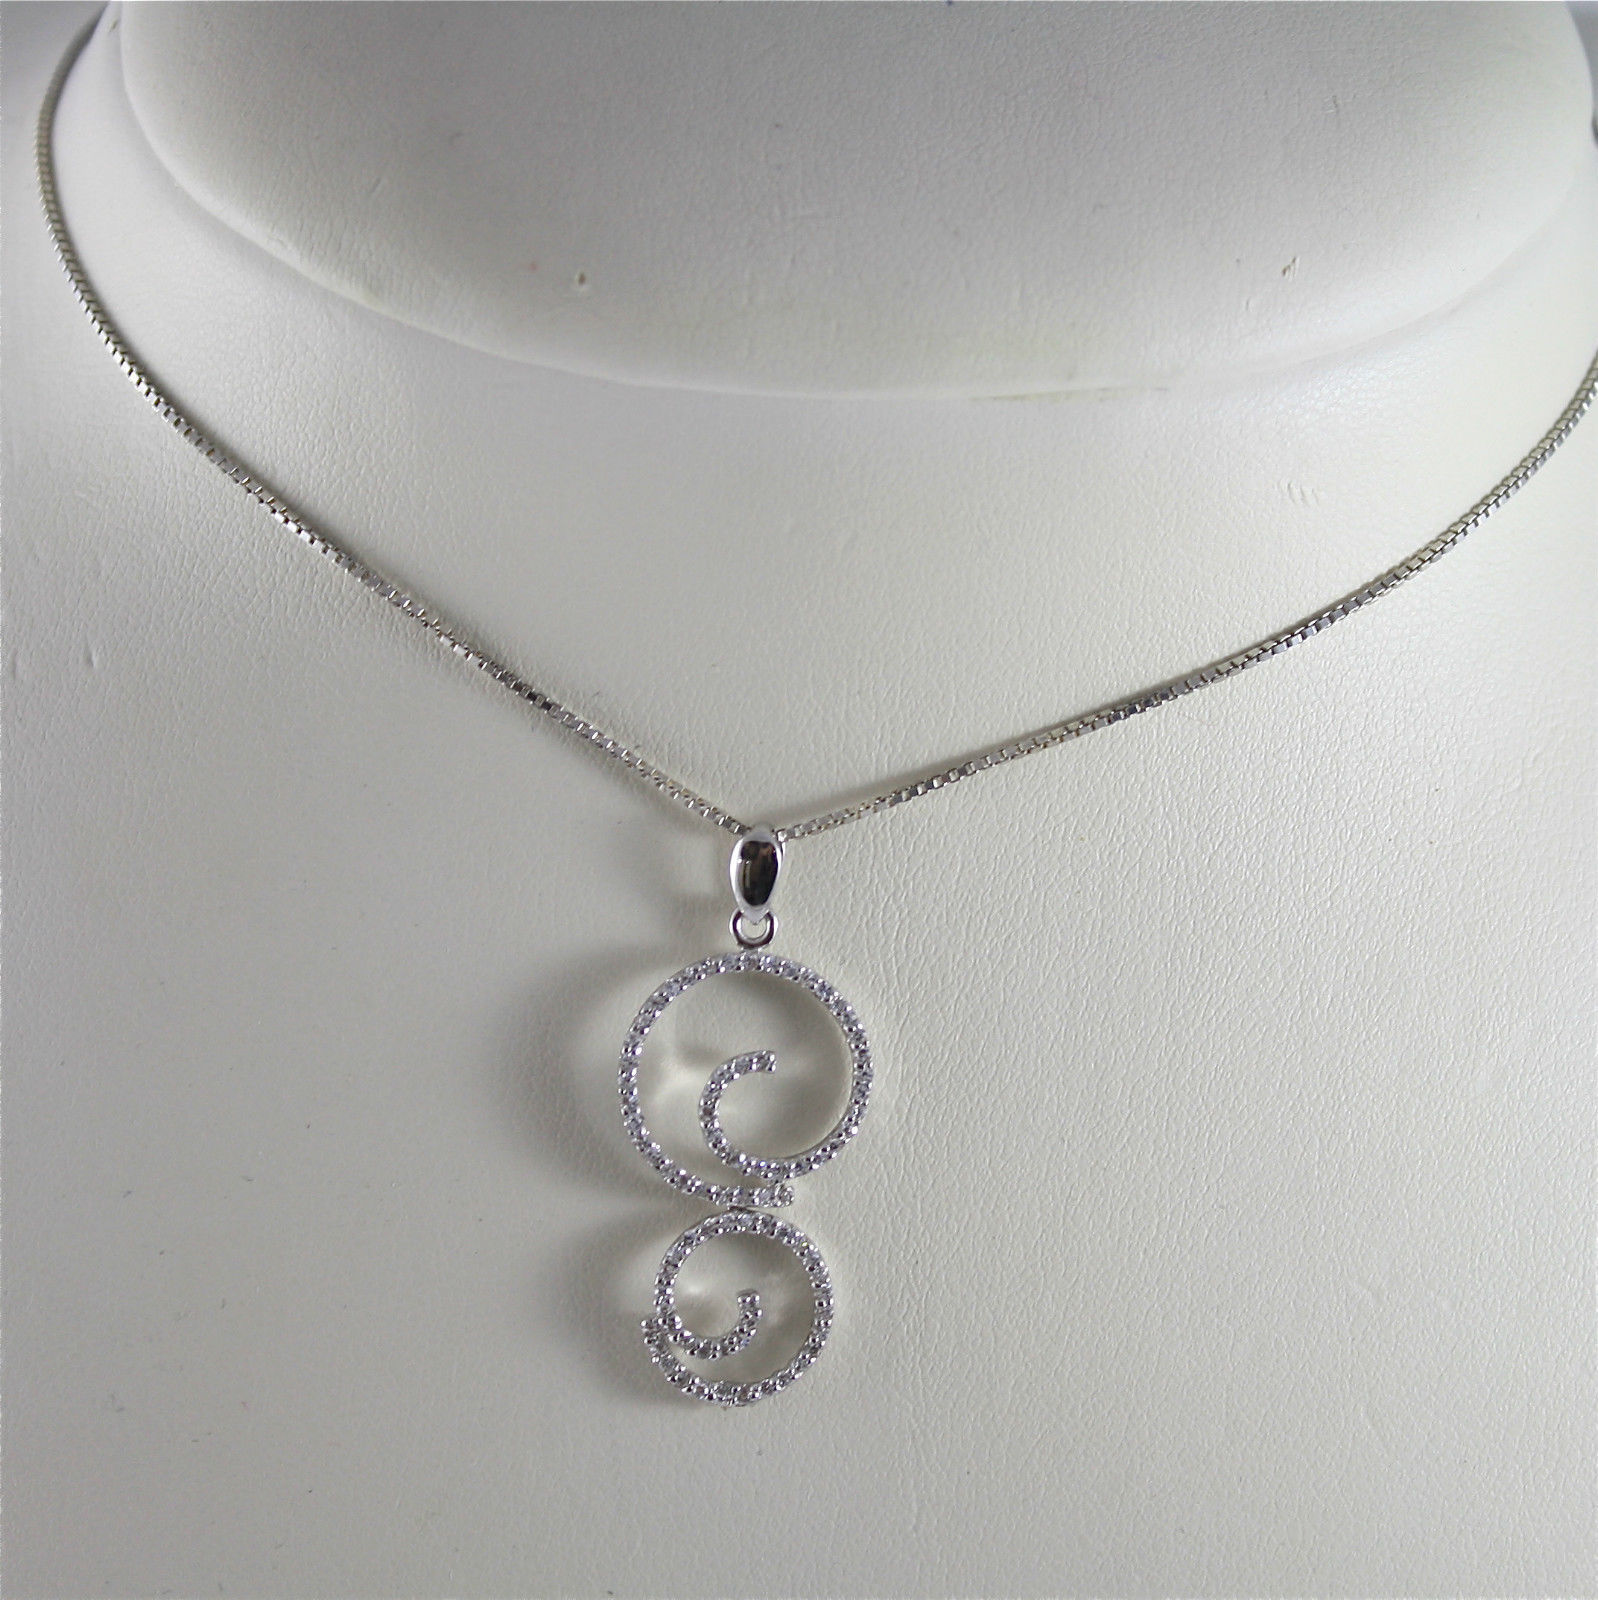 .925 RHODIUM SILVER NECKLACE WITH STYLIZED CURL PENDANT, EMBEDDED ZIRCONIA